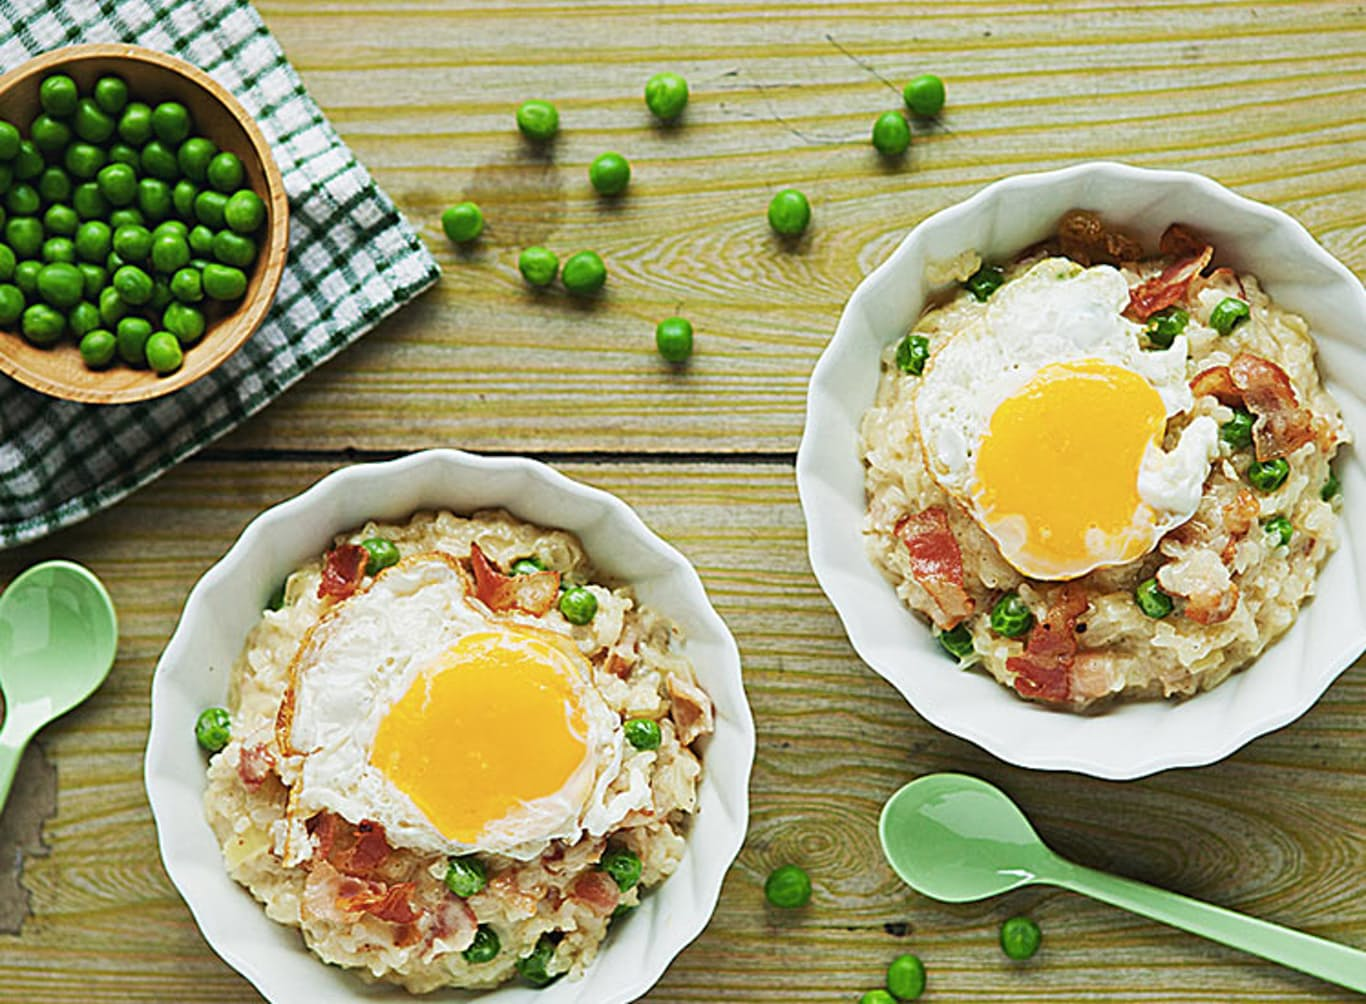 BACON AND EGG RISOTTO BOWL